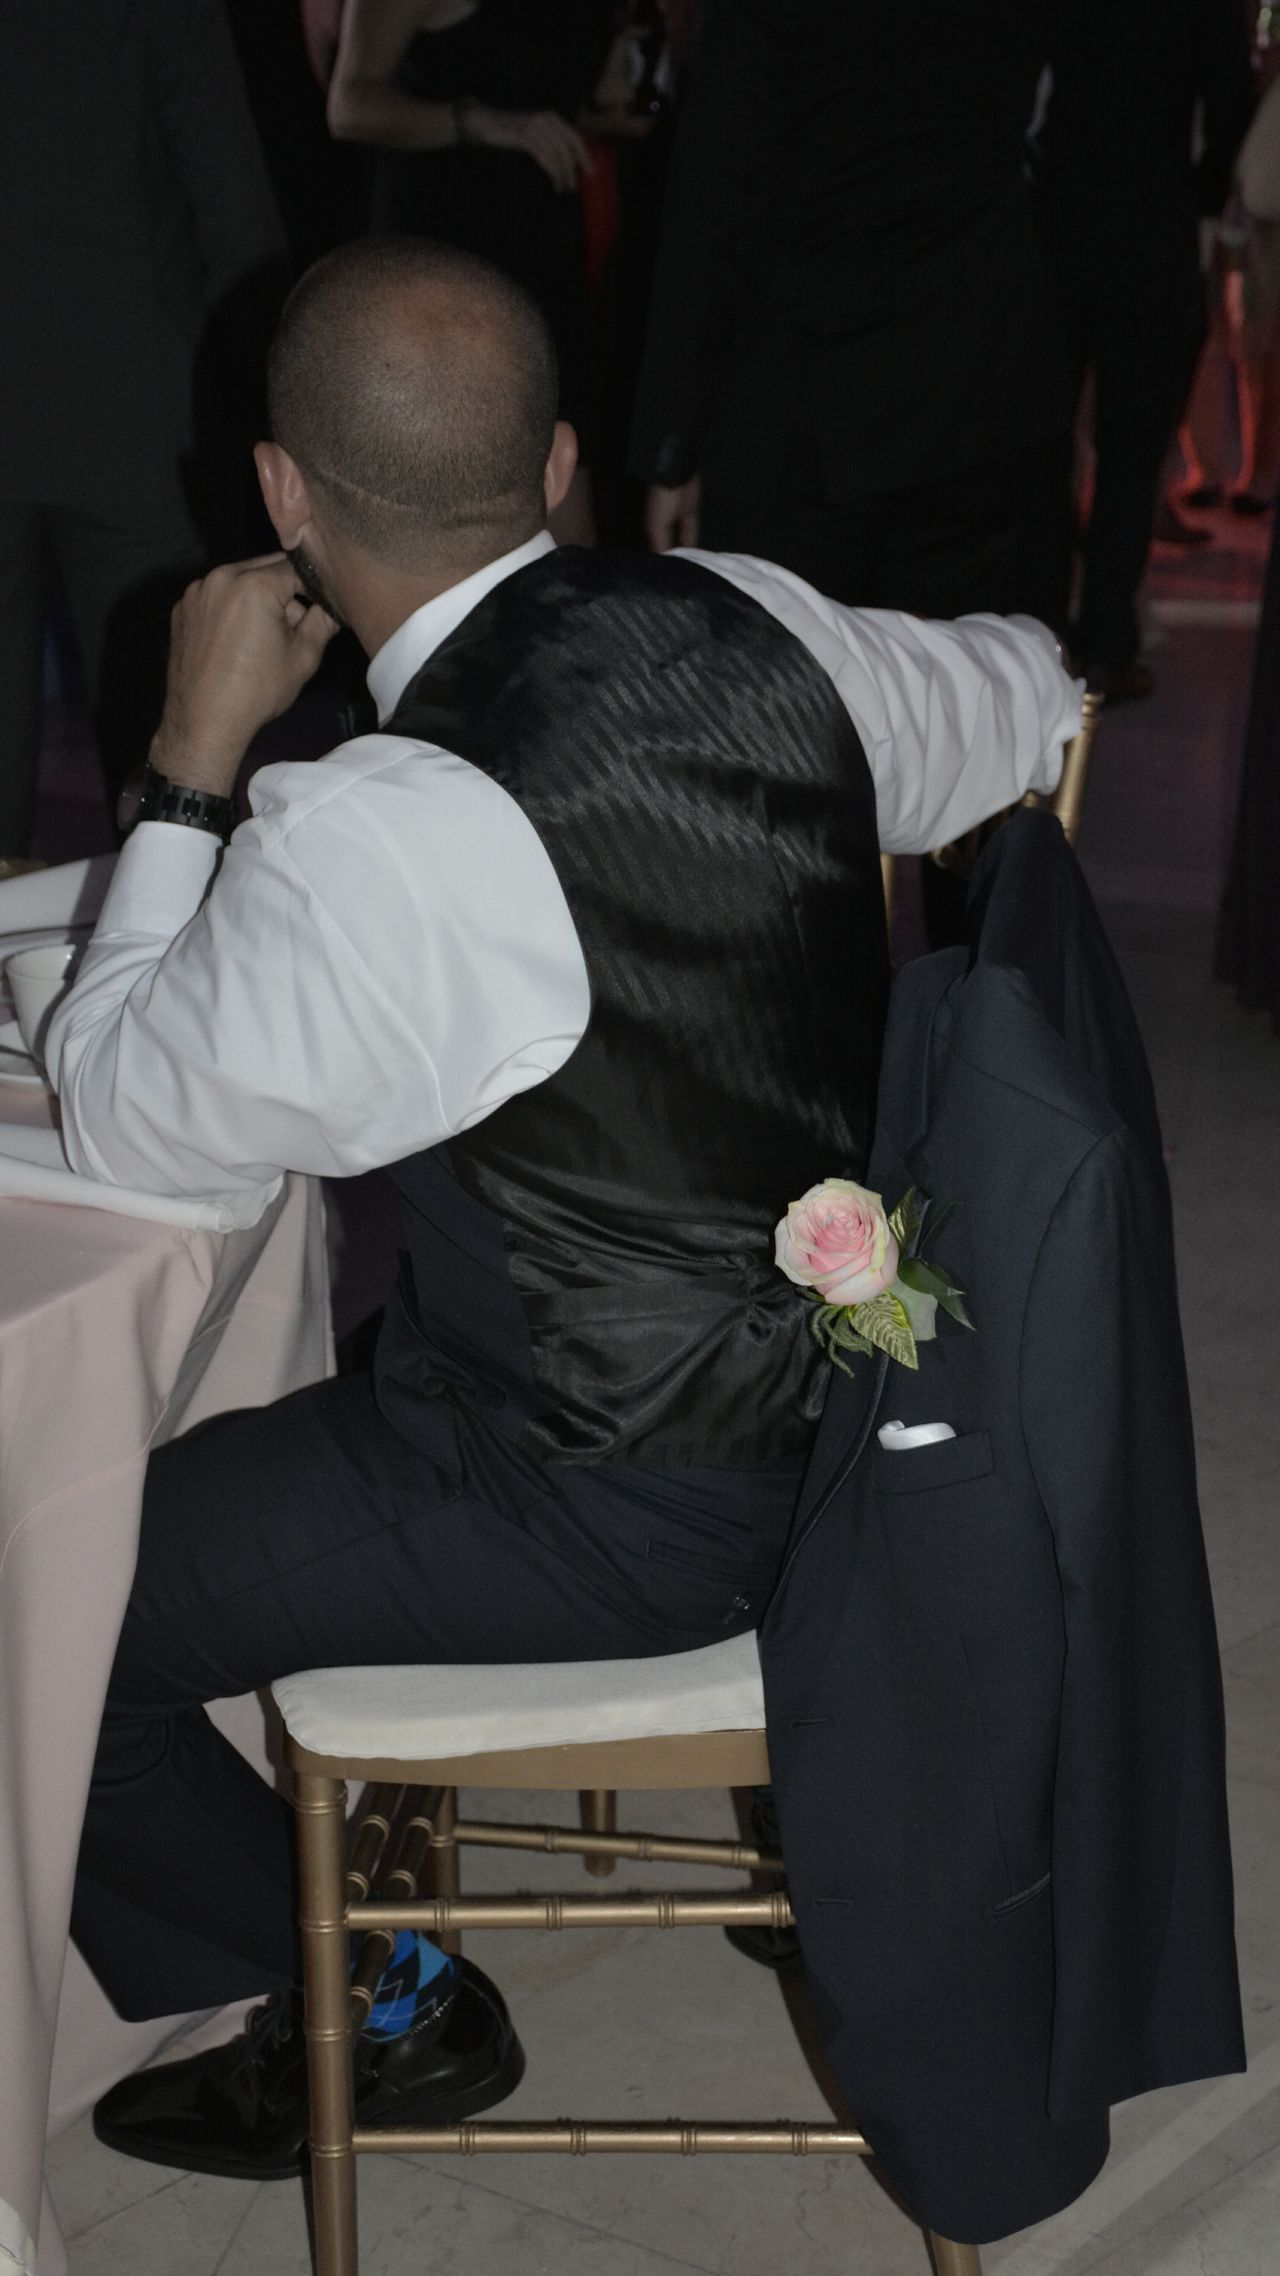 Groomsman Adult One Person Boutonniere People Groomsmen Formal Wear Formal Attire One Man Only Wedding Male Groomsman Adult Ceremony Wedding Detail Boutonniere Flower Indoors  Lifestyles Men Best Man Bestman Wedding Reception Wedding Flower Wedding Flowers Pink Rose Pink Color